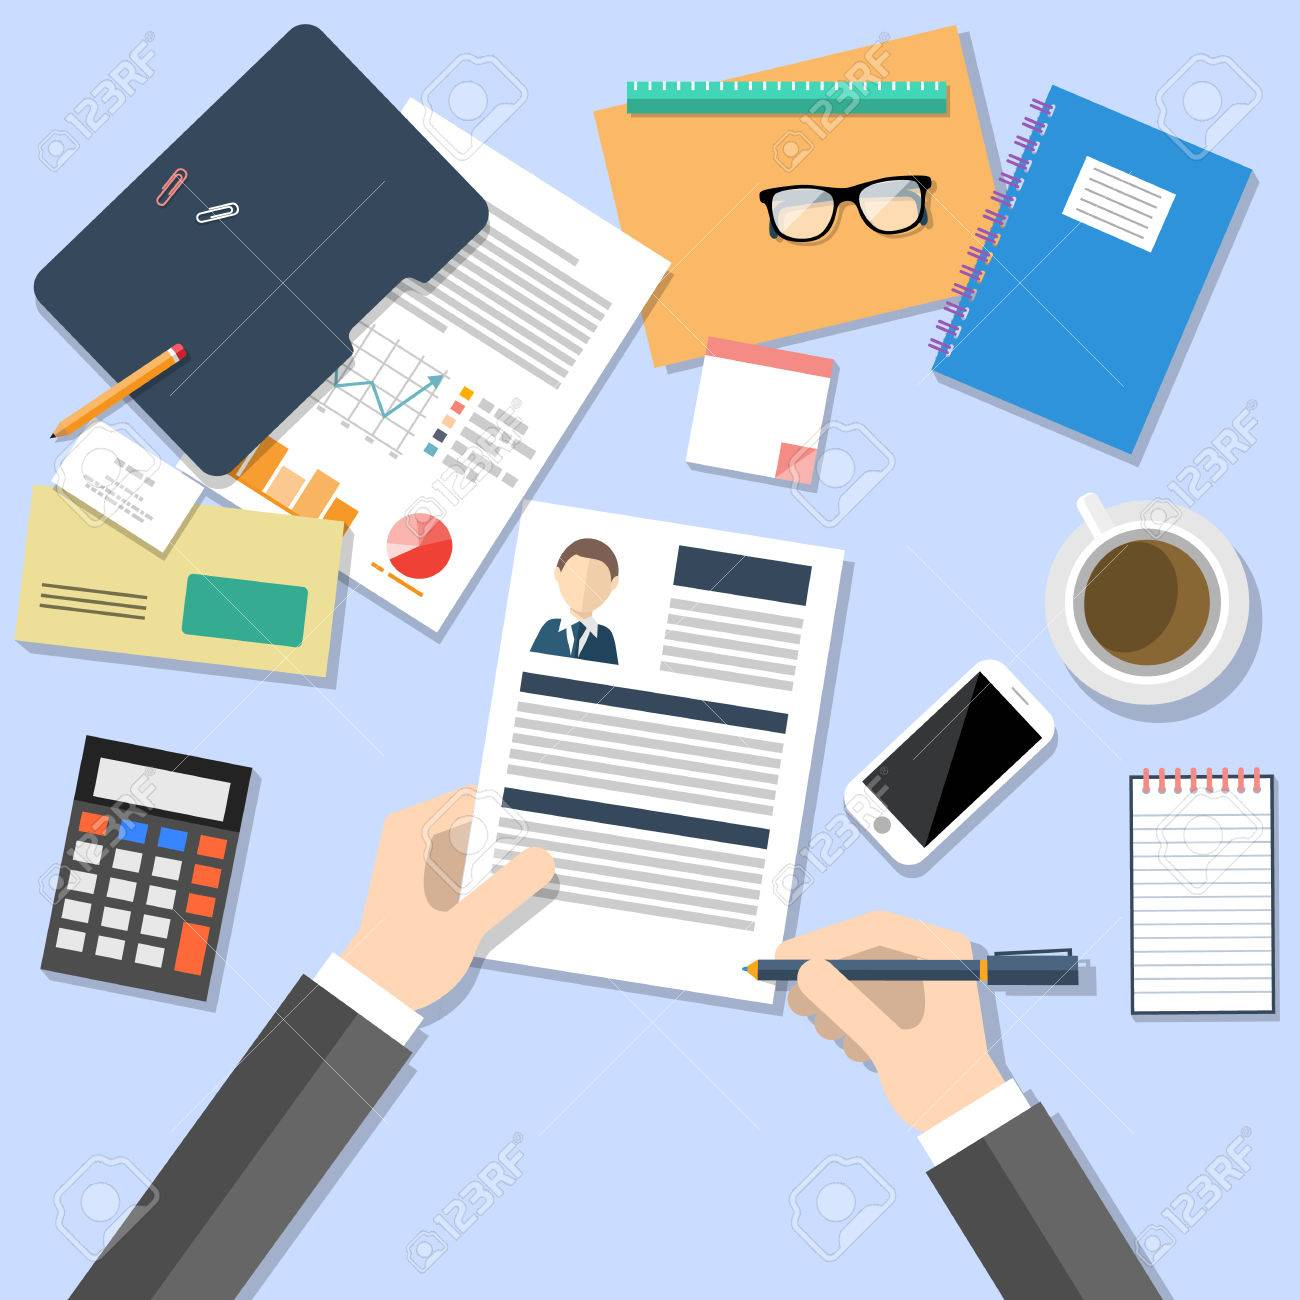 business concept for human resources manager top view of business concept for human resources manager top view of human hands holding cv analysing